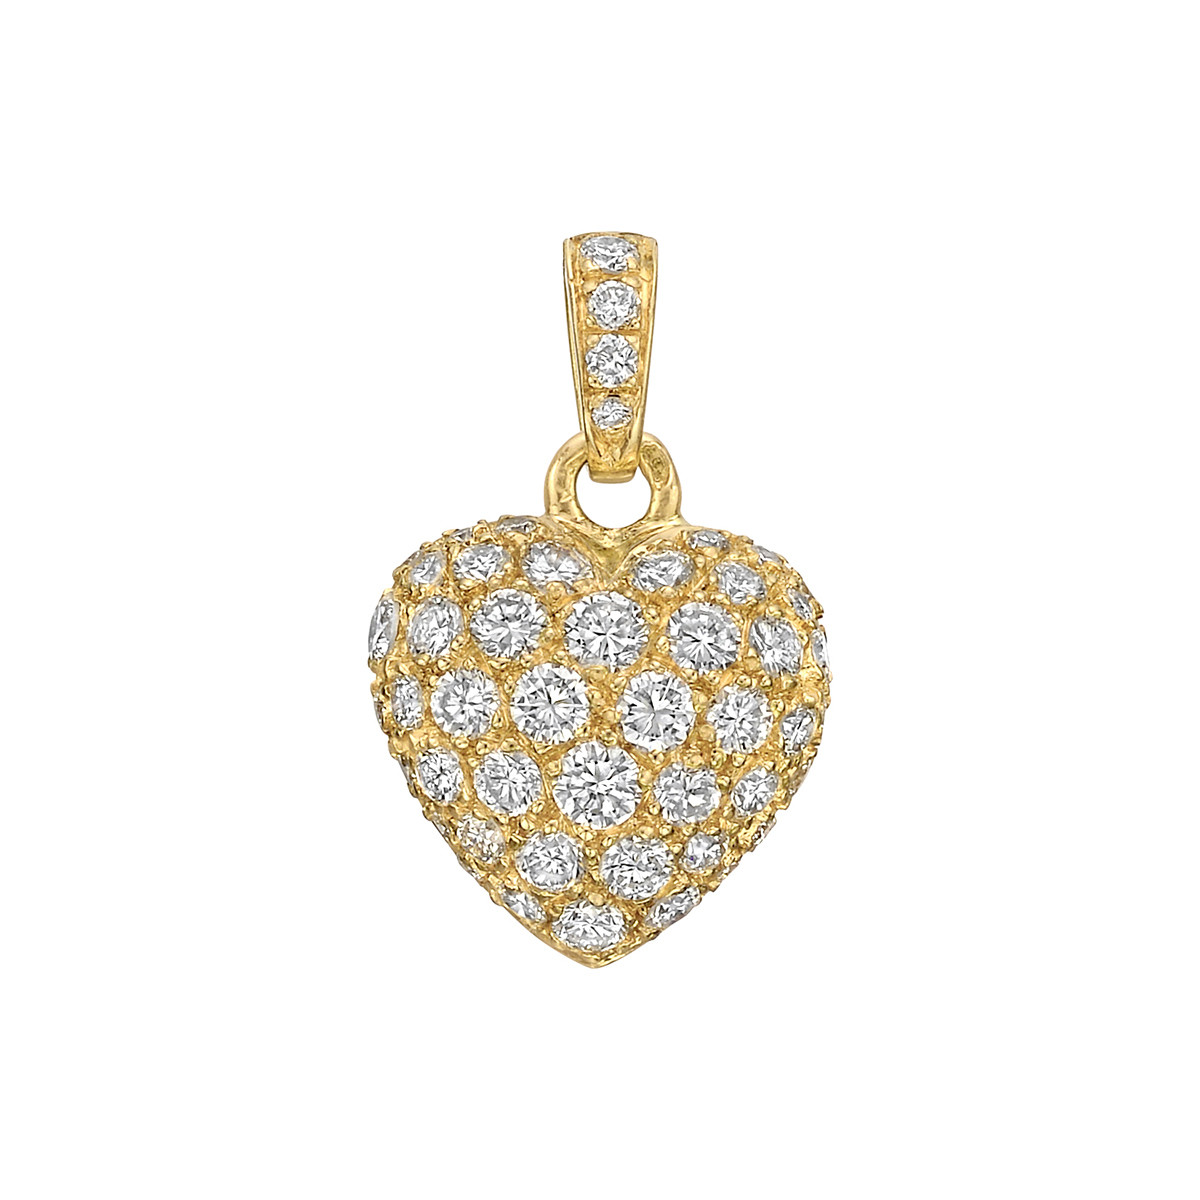 Estate cartier 18k yellow gold diamond heart pendantcharm 18k yellow gold diamond heart pendantcharm aloadofball Images